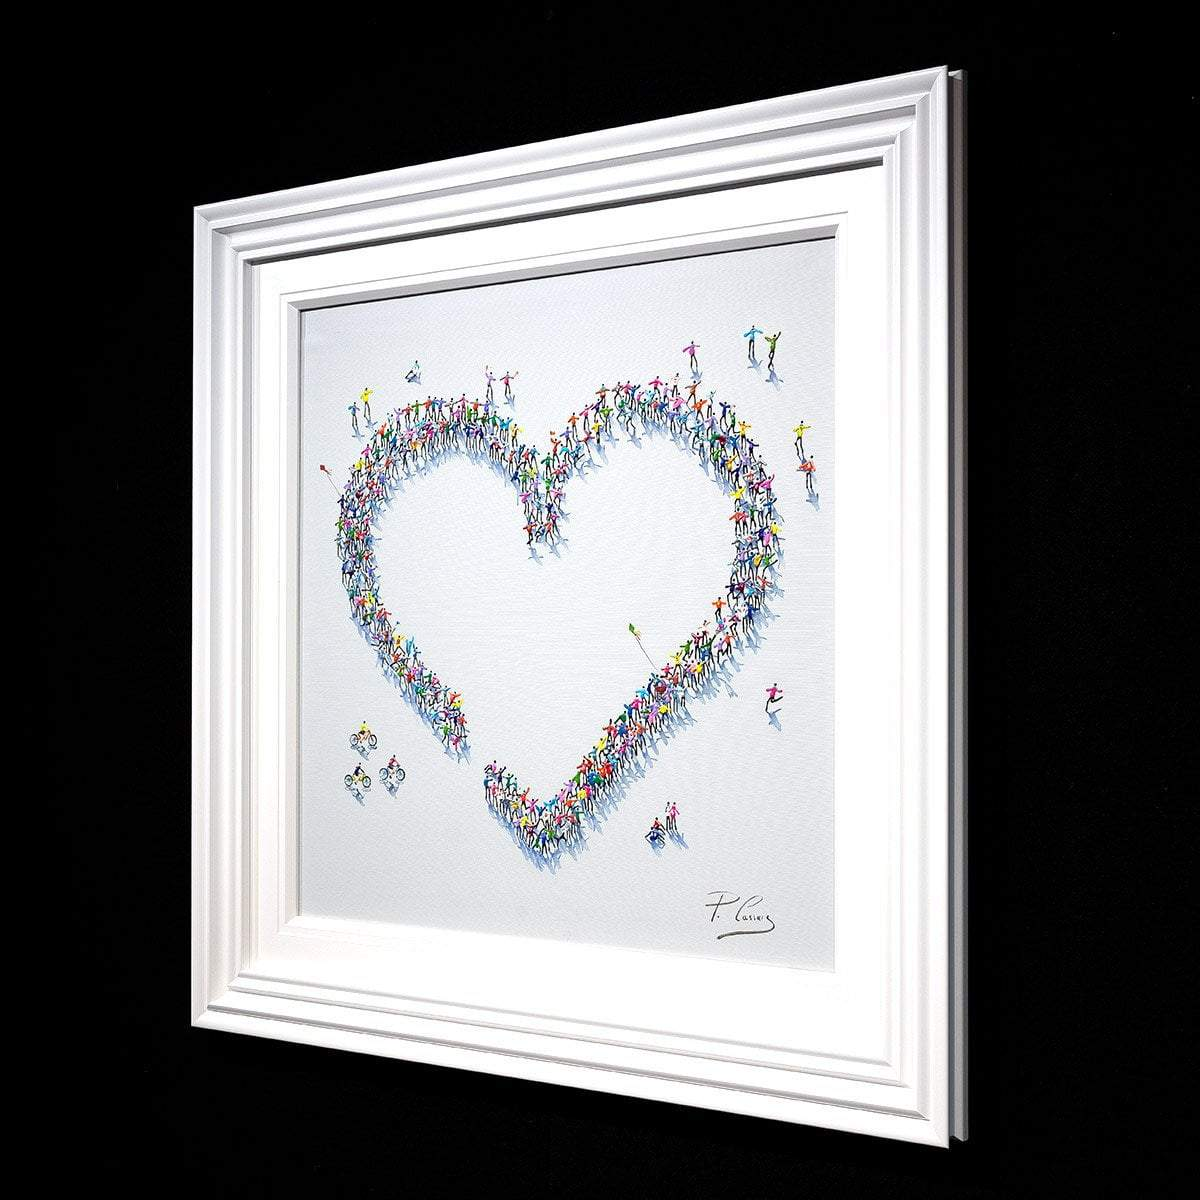 It's Great When We're Together - Original Paola Cassais Framed